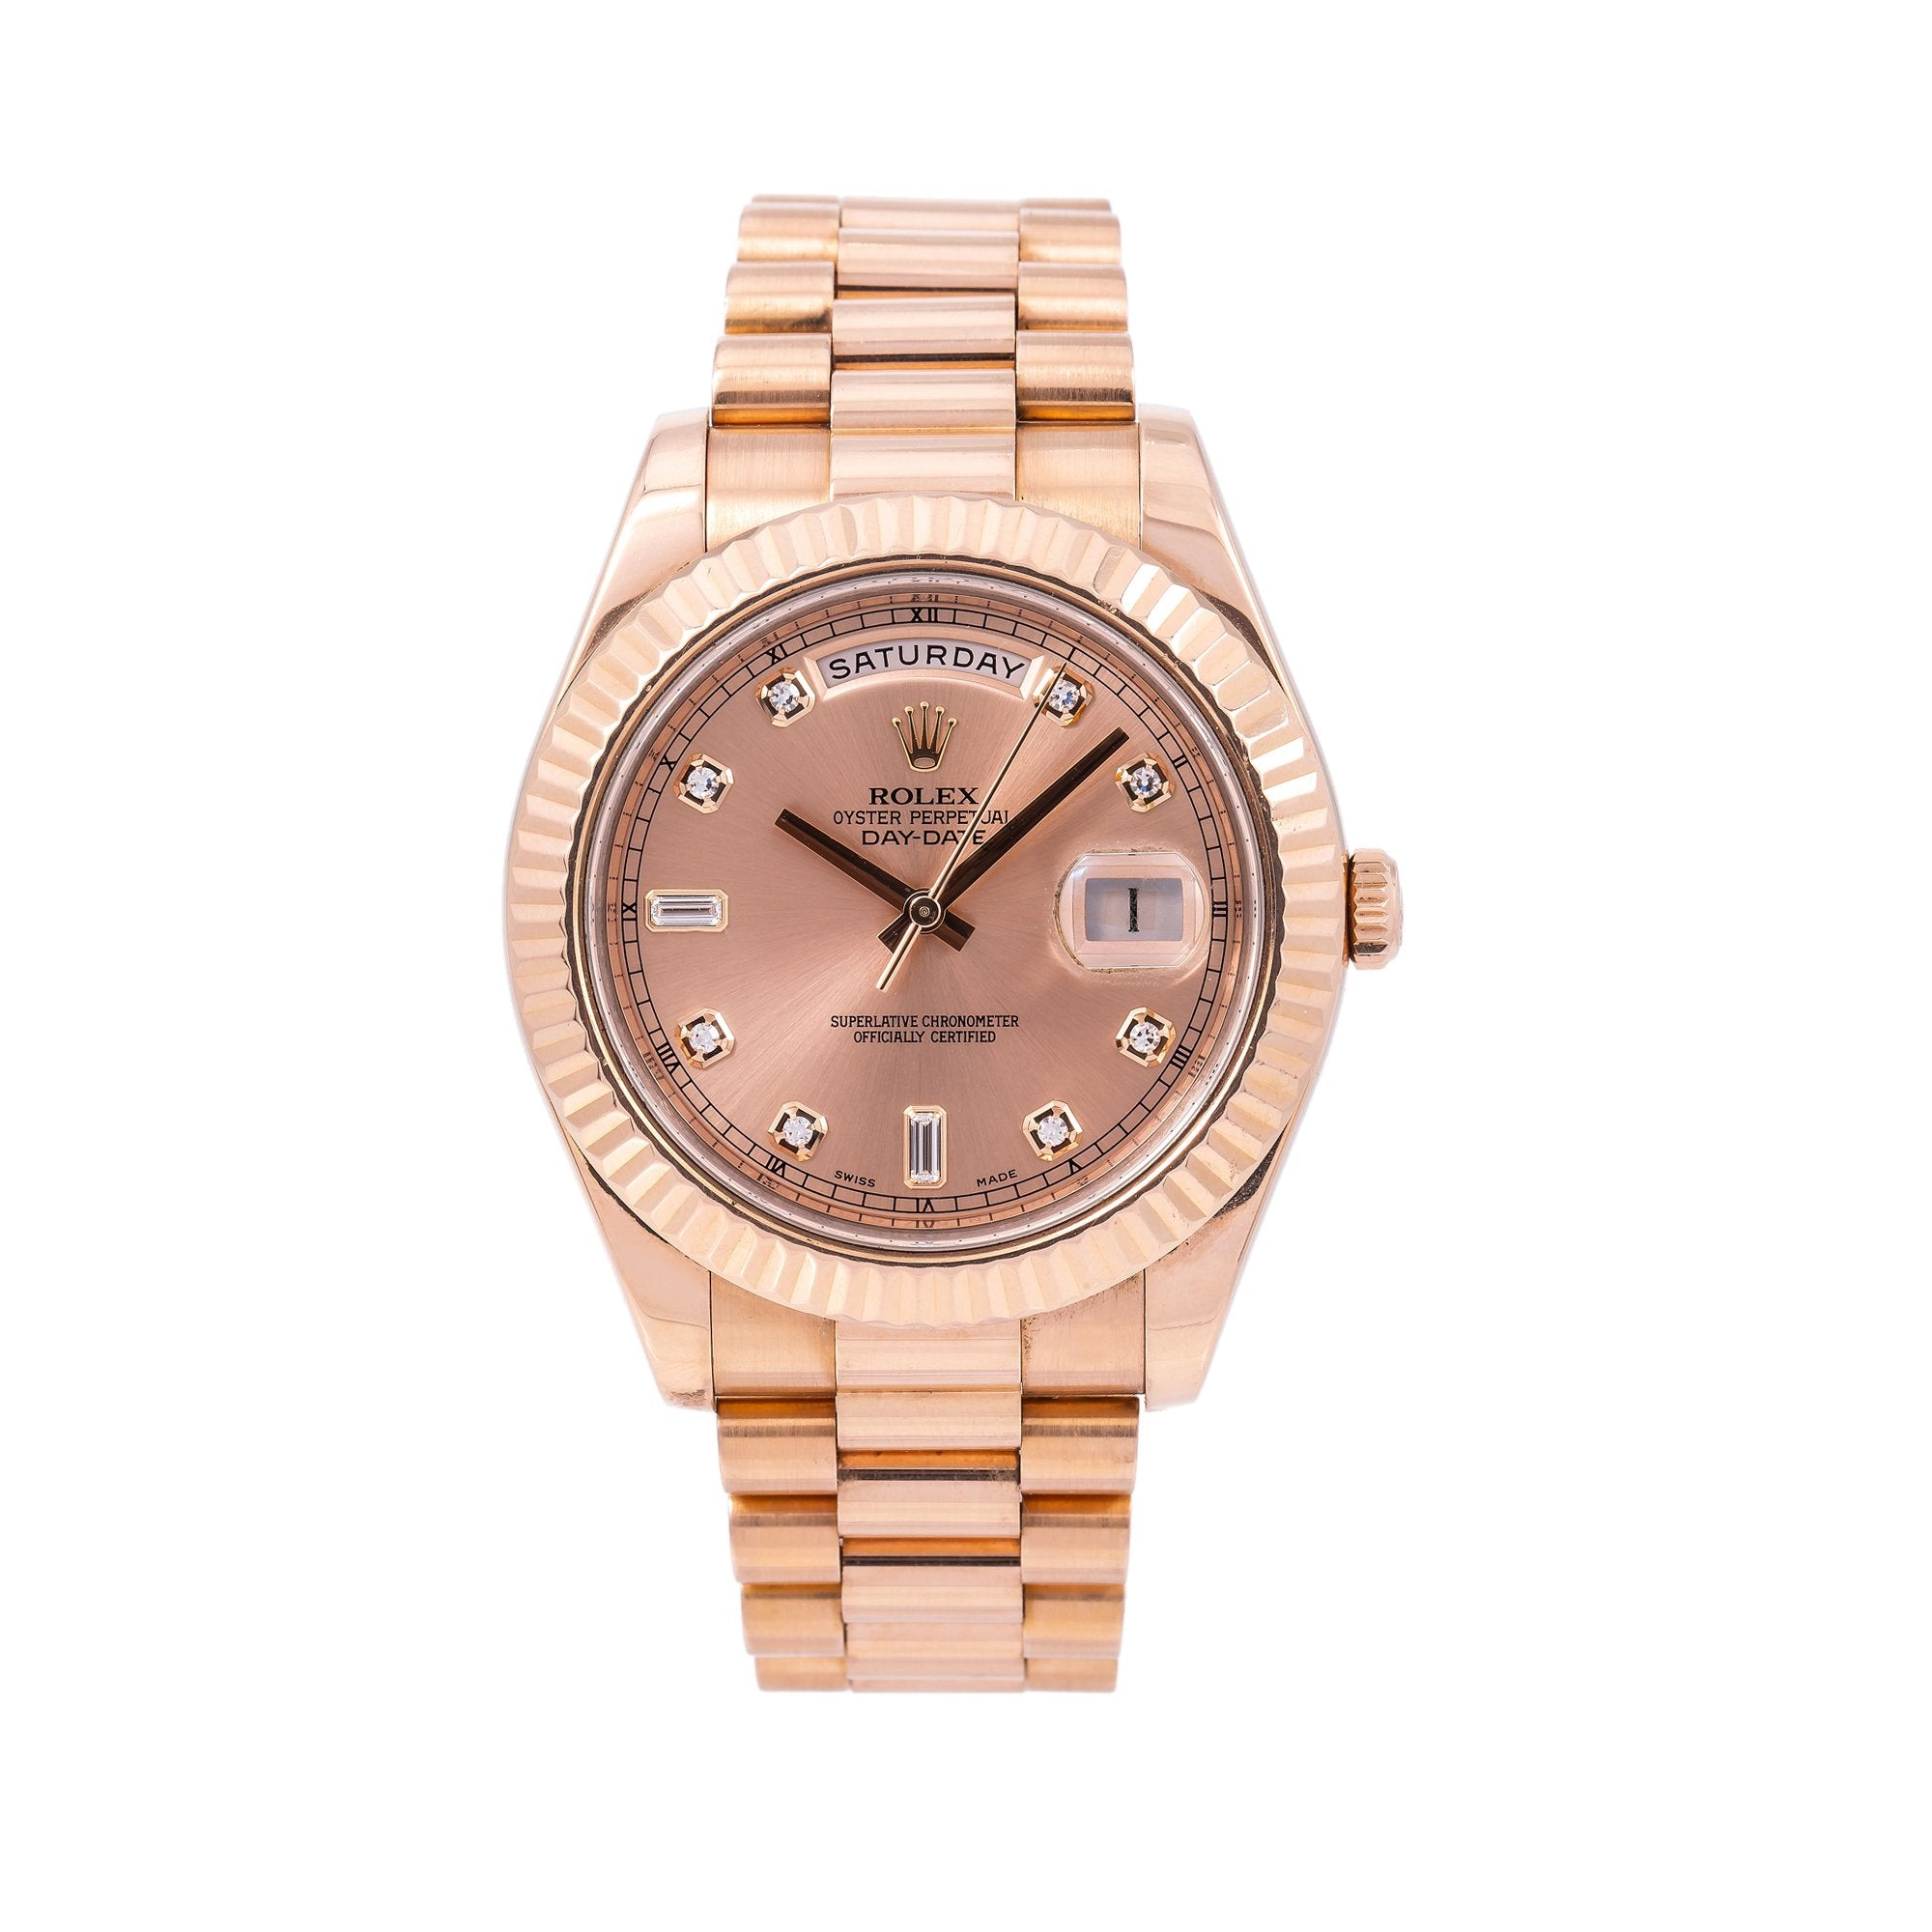 Rolex Day-Date II Diamond Watch, 218235 41mm, Rose Gold Factory Diamond Dial With Rose Gold President Bracelet